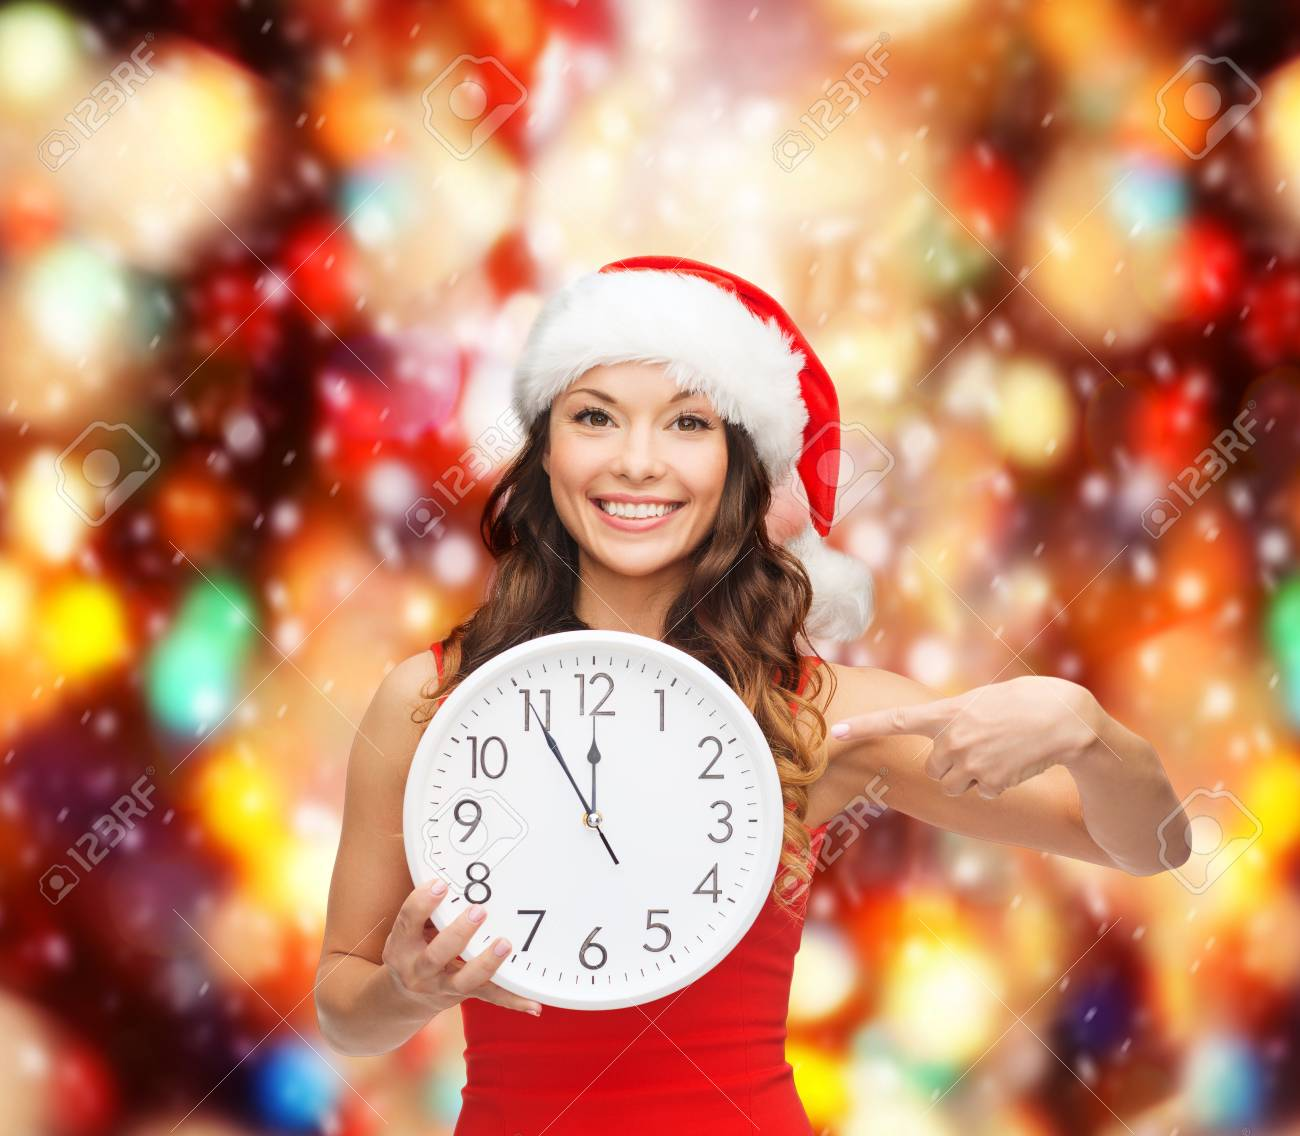 christmas, x-mas, winter, happiness concept - smiling woman in santa helper hat with clock showing 12 Stock Photo - 23450966